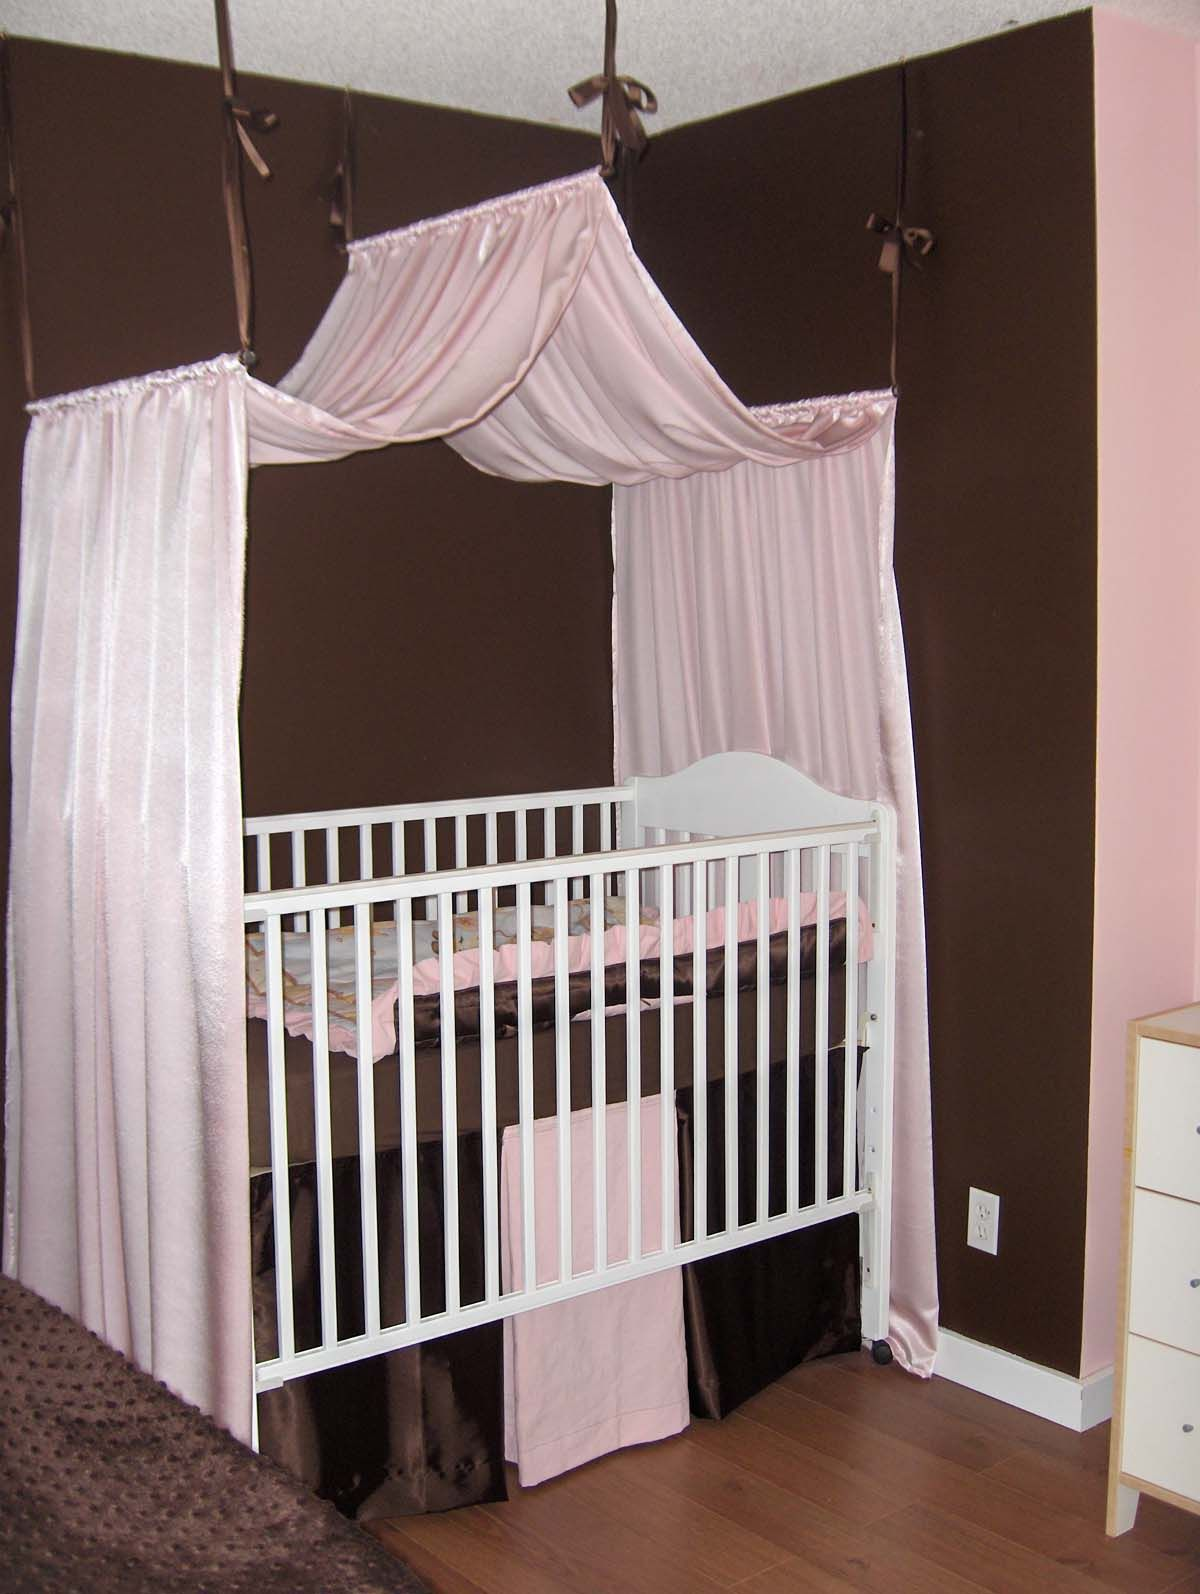 White Wooden Rectangle Baby Crib with Brown Soft Mattress Accessories and Soft Pink Canopy hanging on the Brown Ribbons for Baby Nursery Crib Decorating ... & Witching Canopy Baby Cribs For Cute Nursery Room : Chic White ...